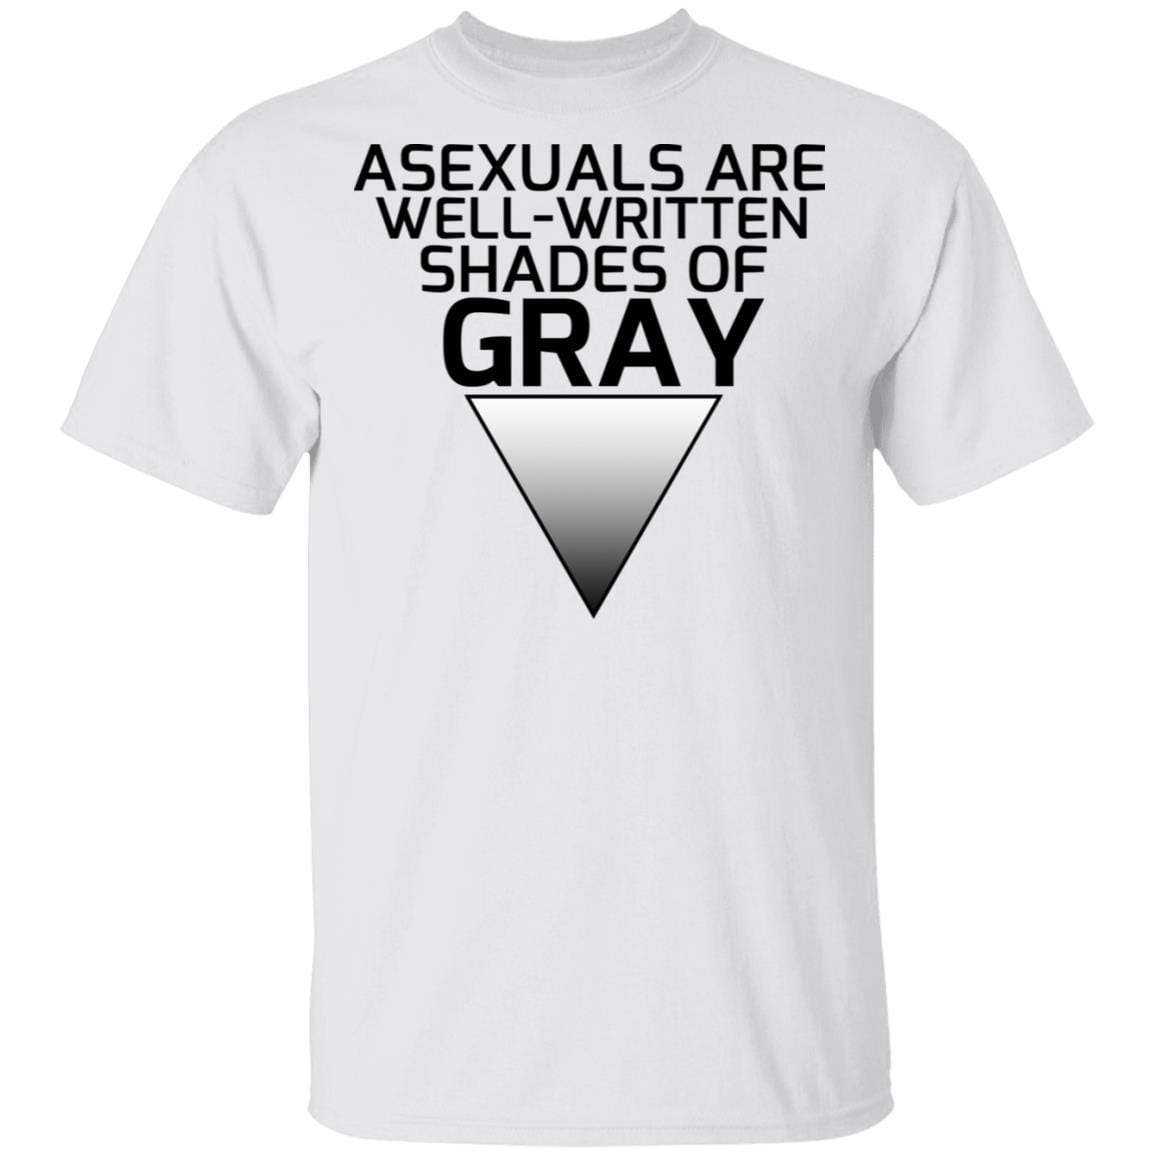 Asexuals Are Well Written Shades Of Gray T-Shirts, Hoodies 1049-9974-93051314-48300 - Tee Ript